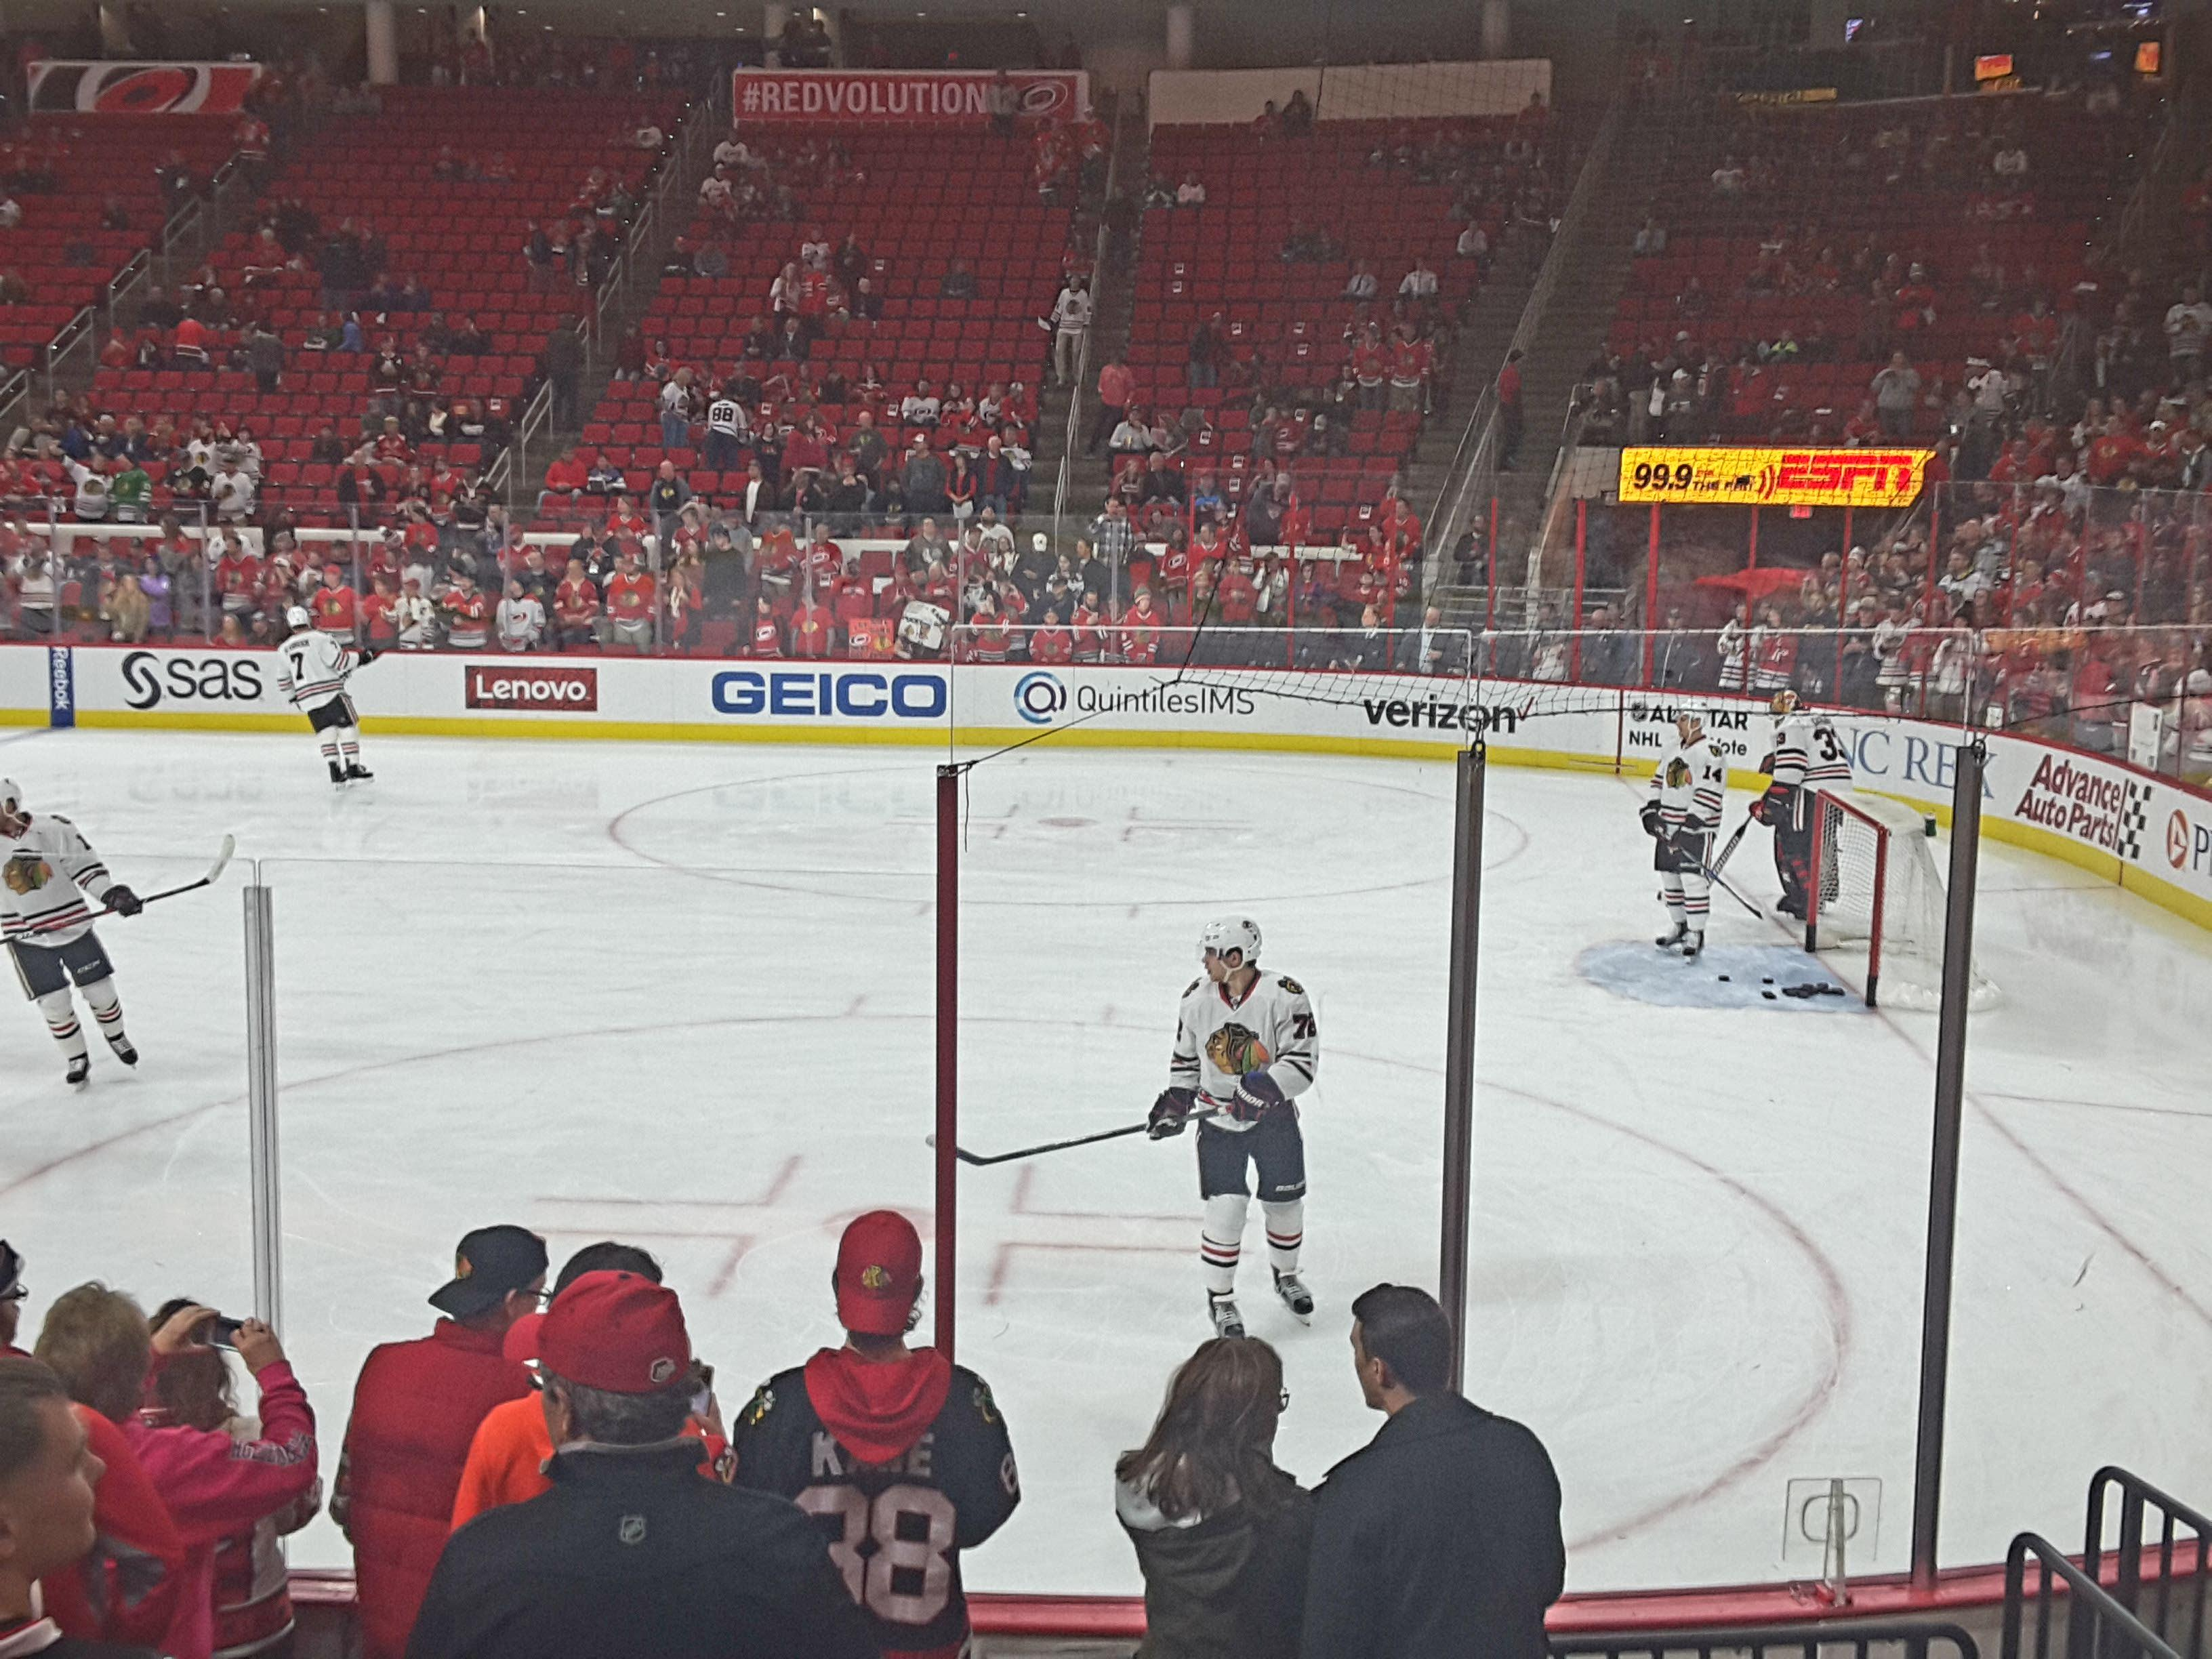 PNC Arena Section 101 Row H Seat 2,3,4,5